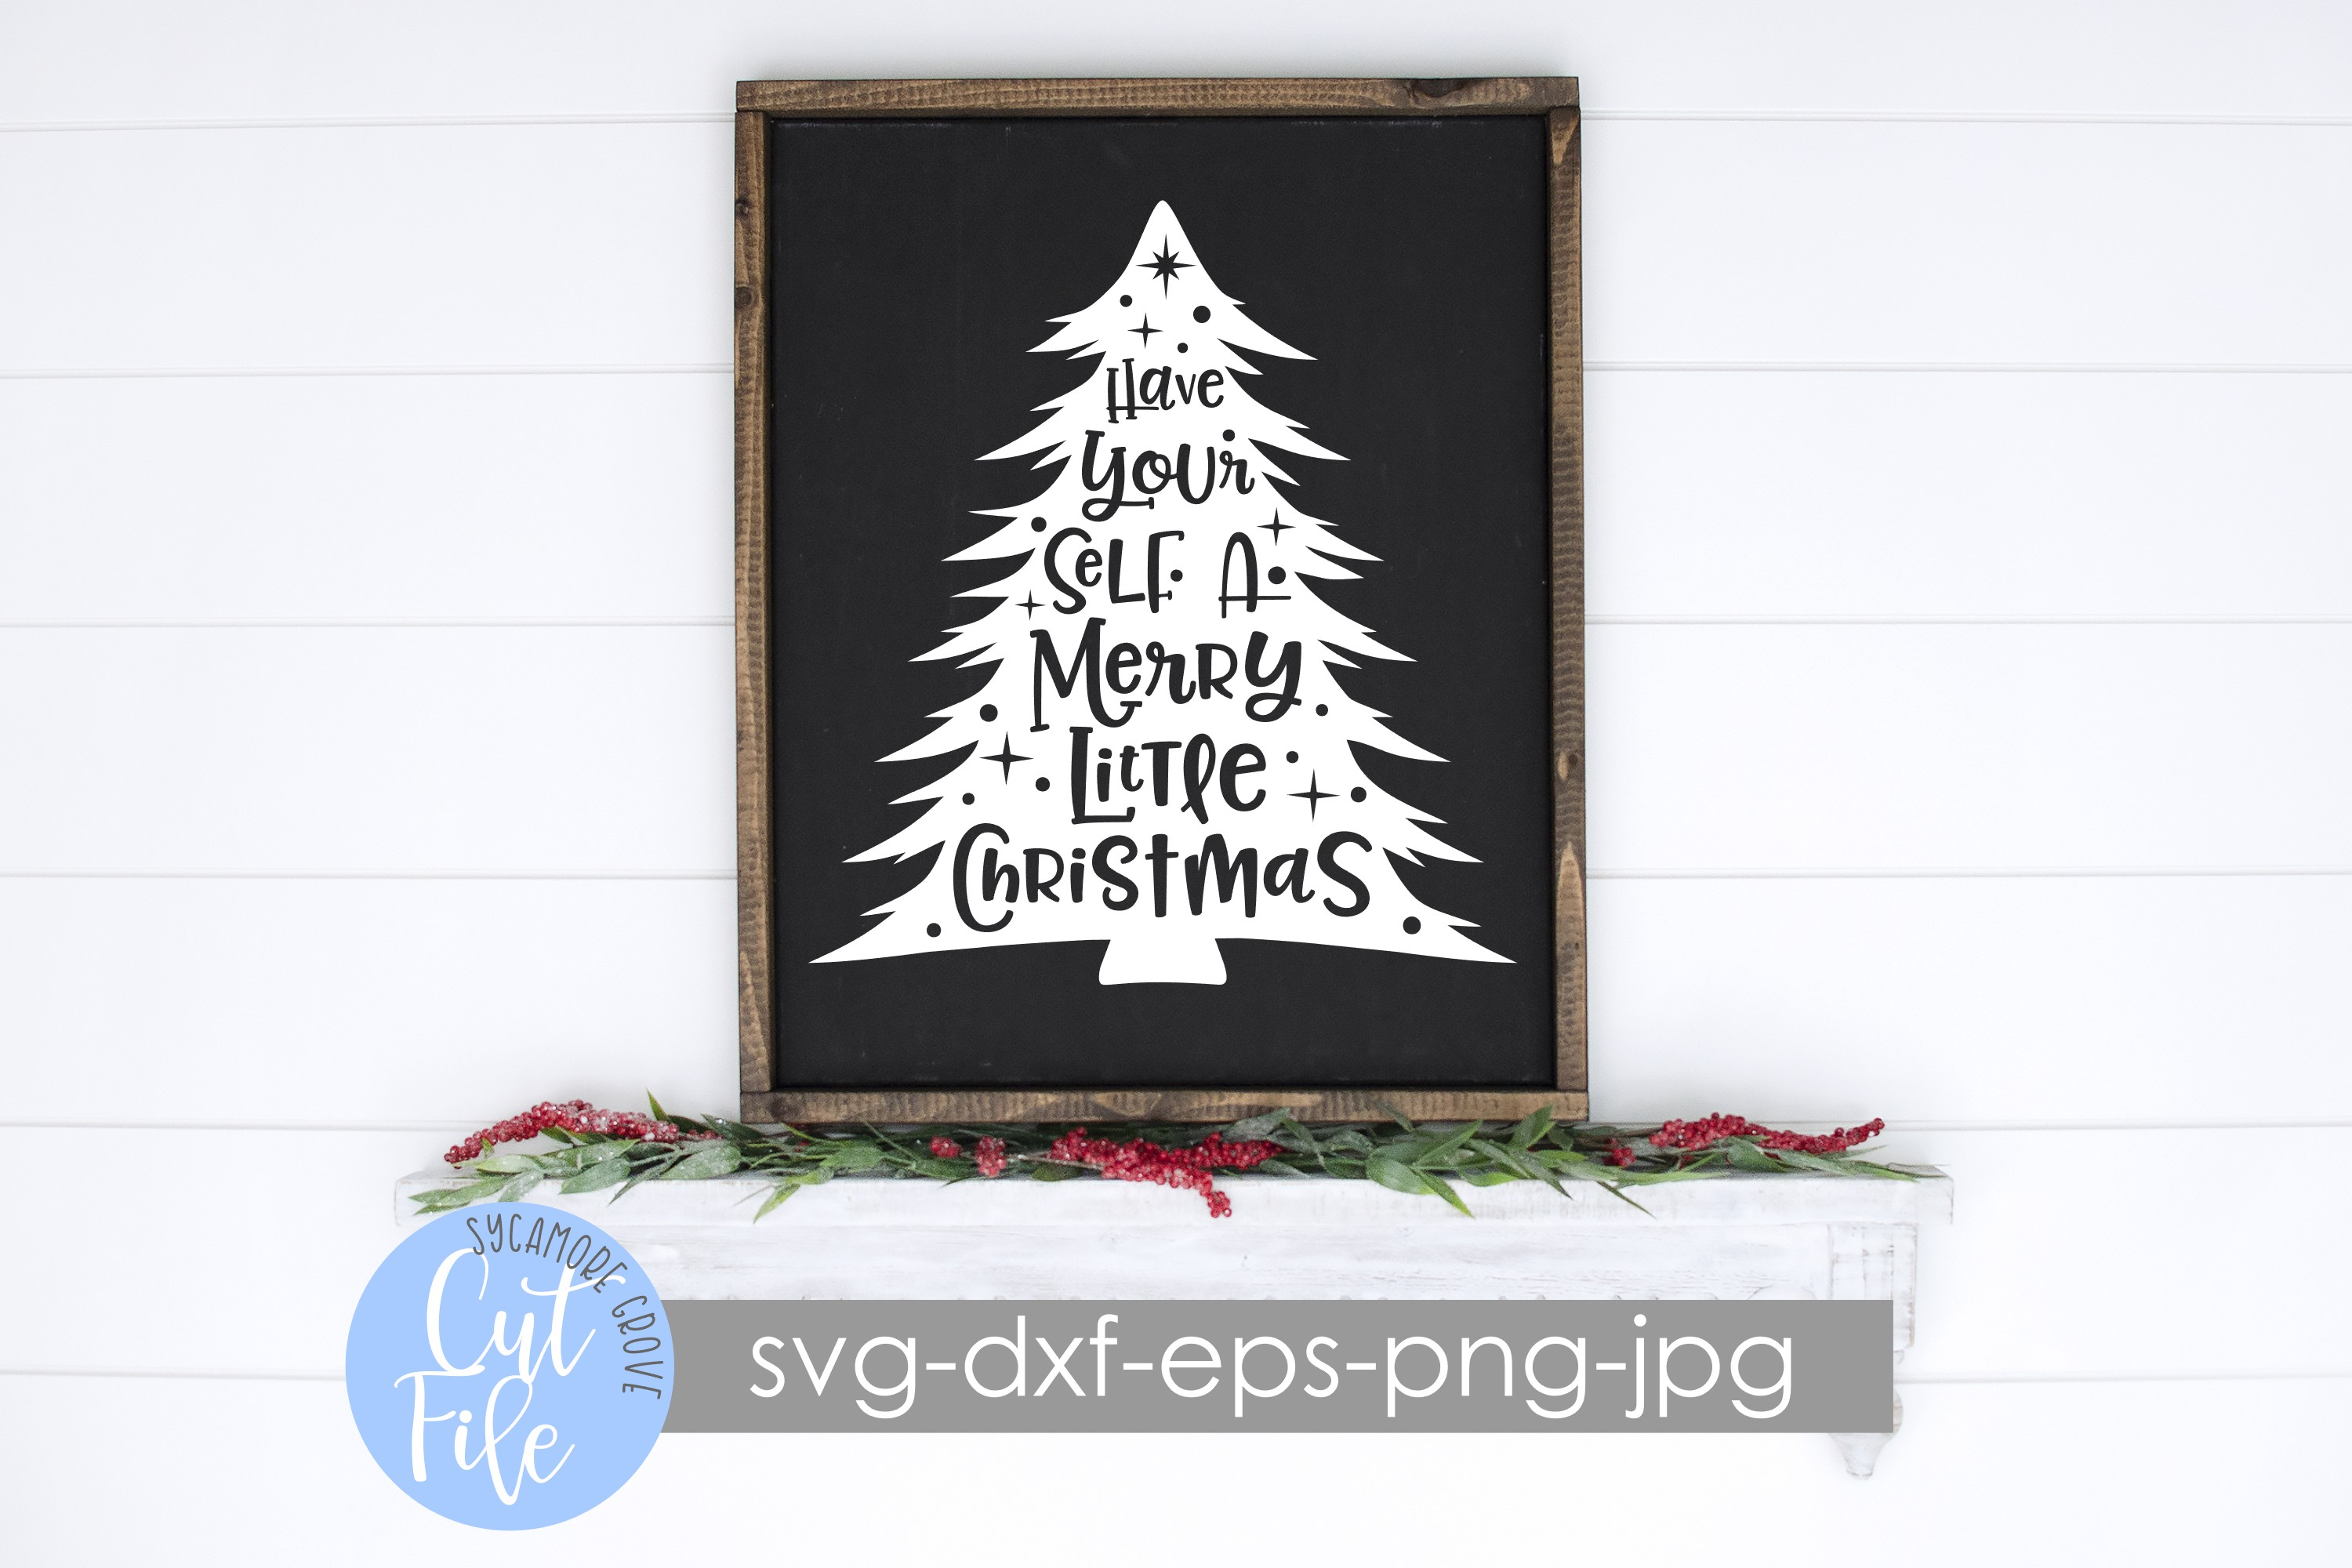 Have Yourself A Merry Little Christmas SVG example image 3